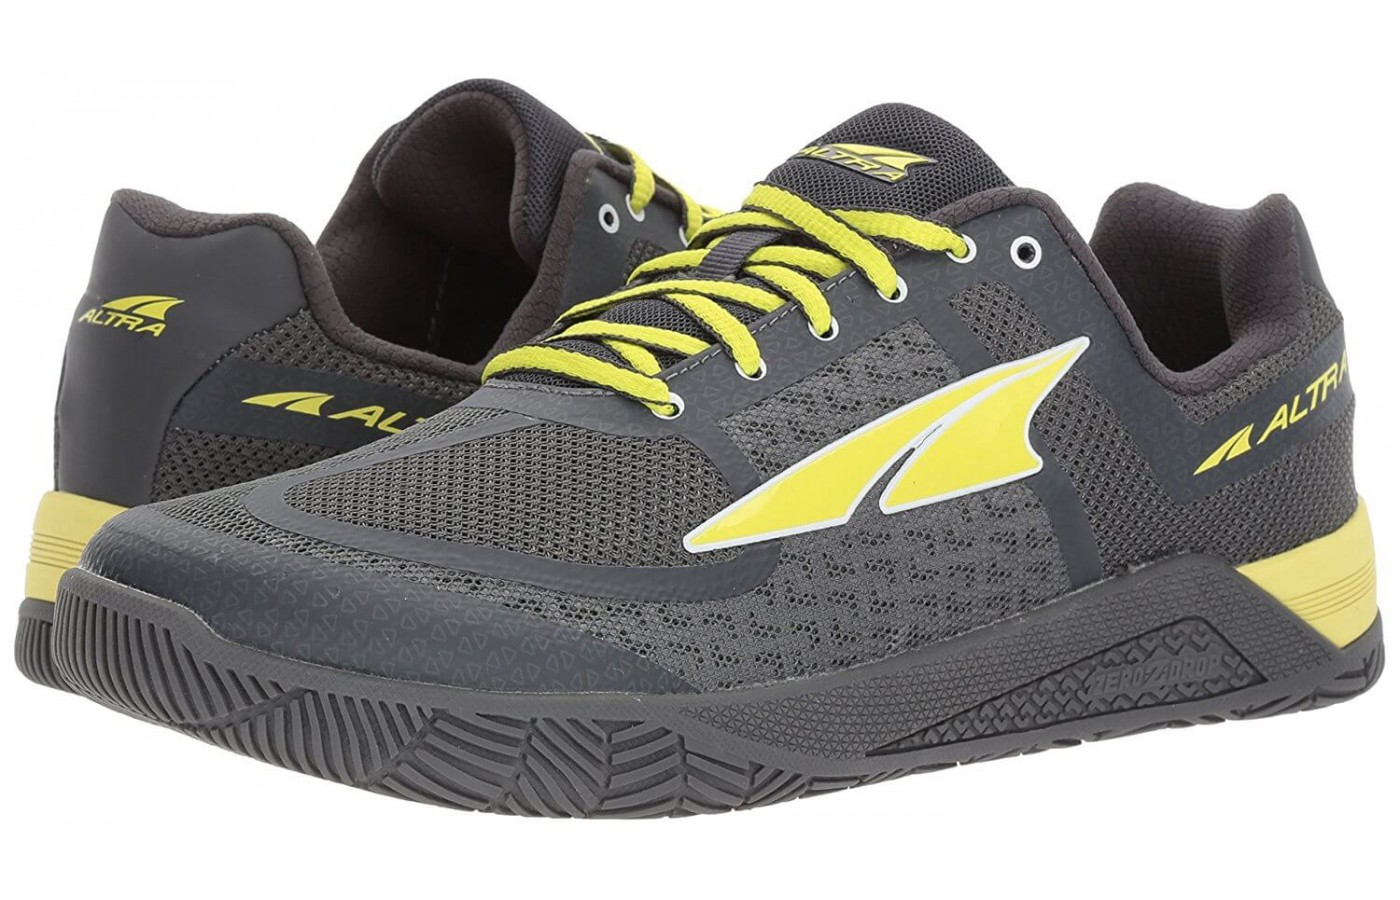 The Altra HIIT XT features A-Bound and EVA foam cushioning